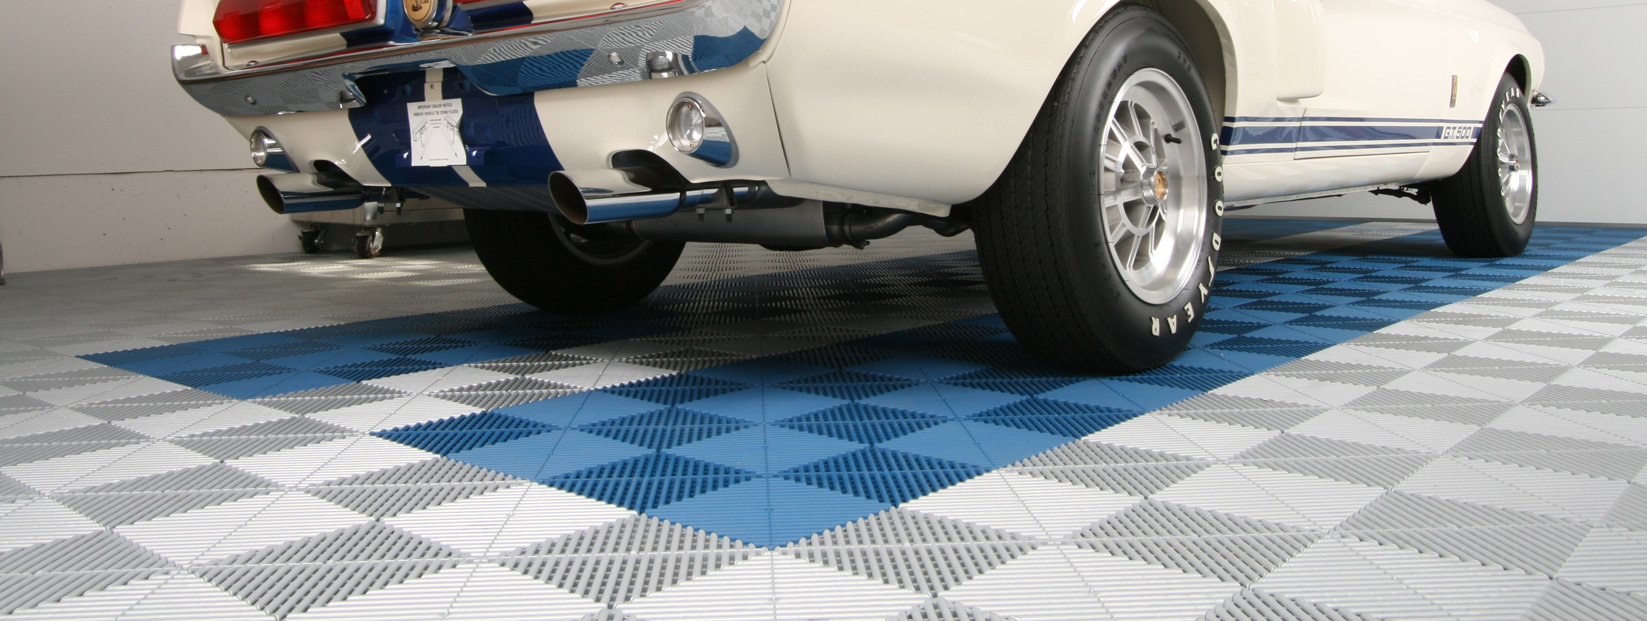 Garage Flooring Tiles Bergen County